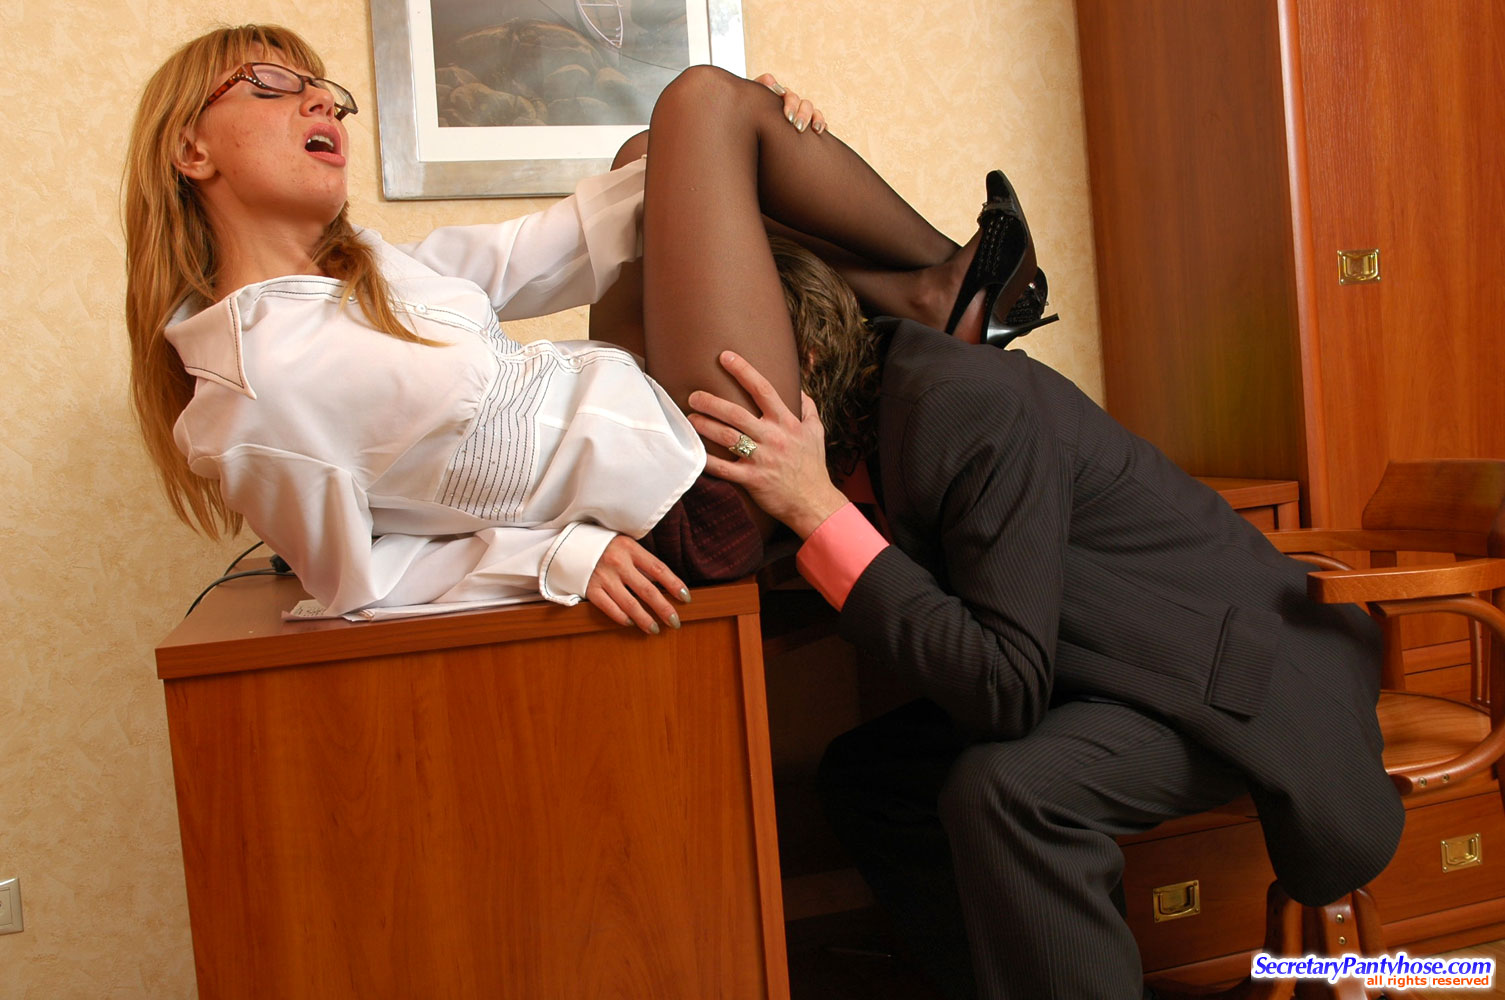 Secretary Pantyhose Review Secretarypantyhose-3301